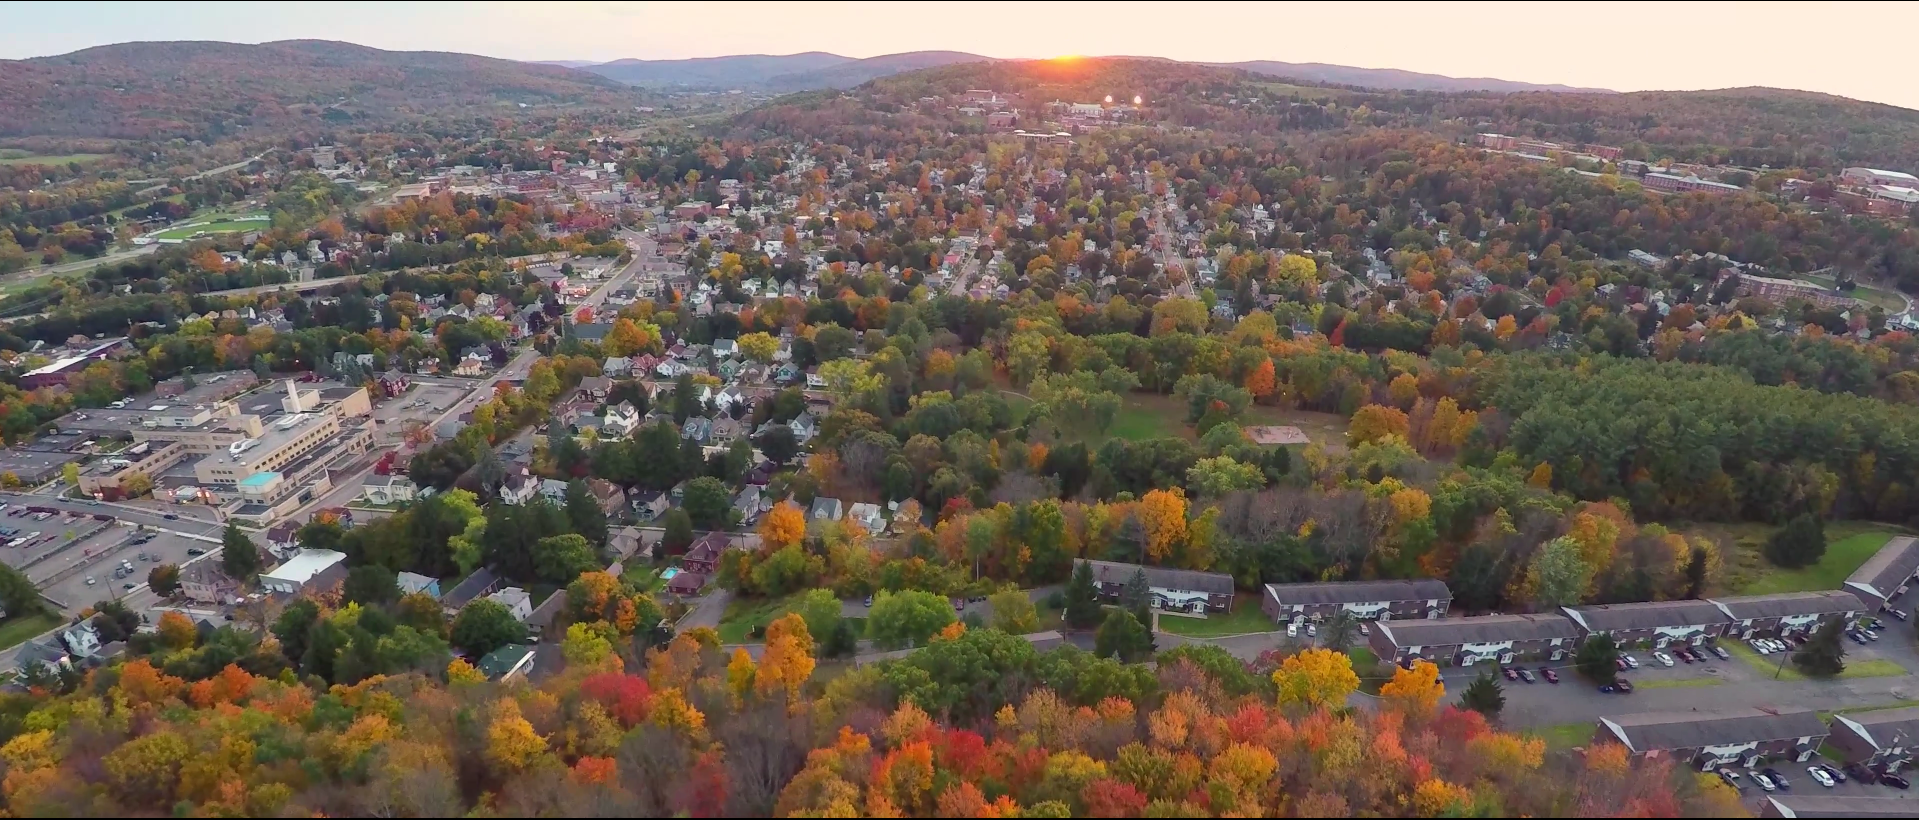 Aerial view of the city of Oneonta